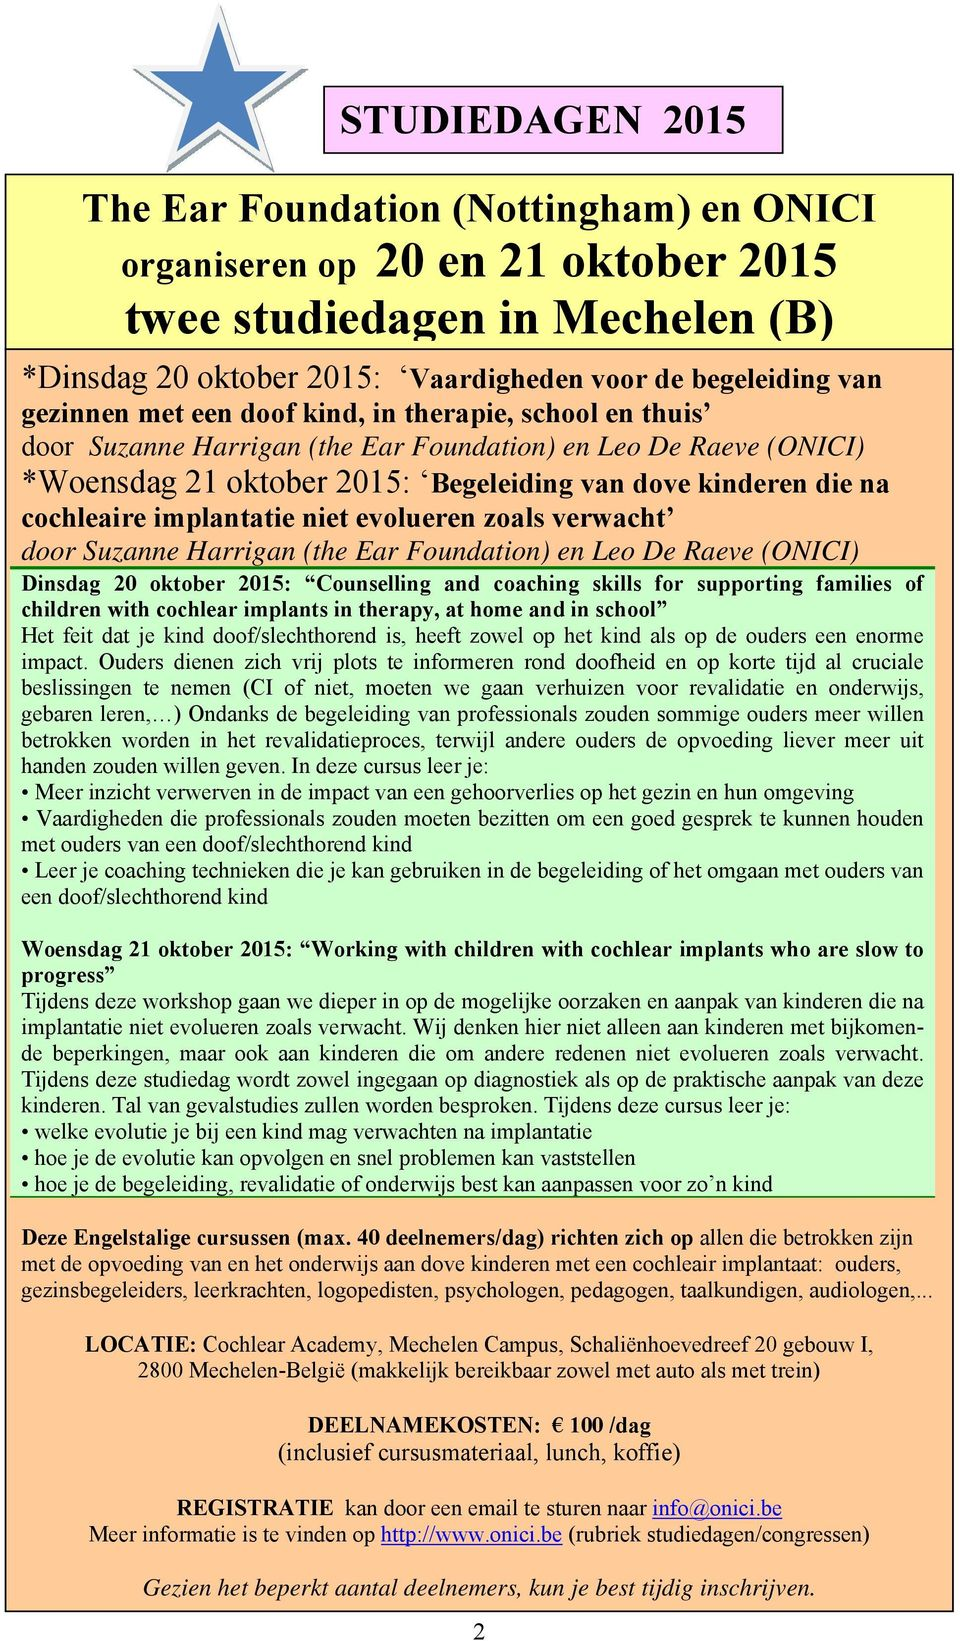 implantatie niet evolueren zoals verwacht door Suzanne Harrigan (the Ear Foundation) en Leo De Raeve (ONICI) Dinsdag 20 oktober 2015: Counselling and coaching skills for supporting families of